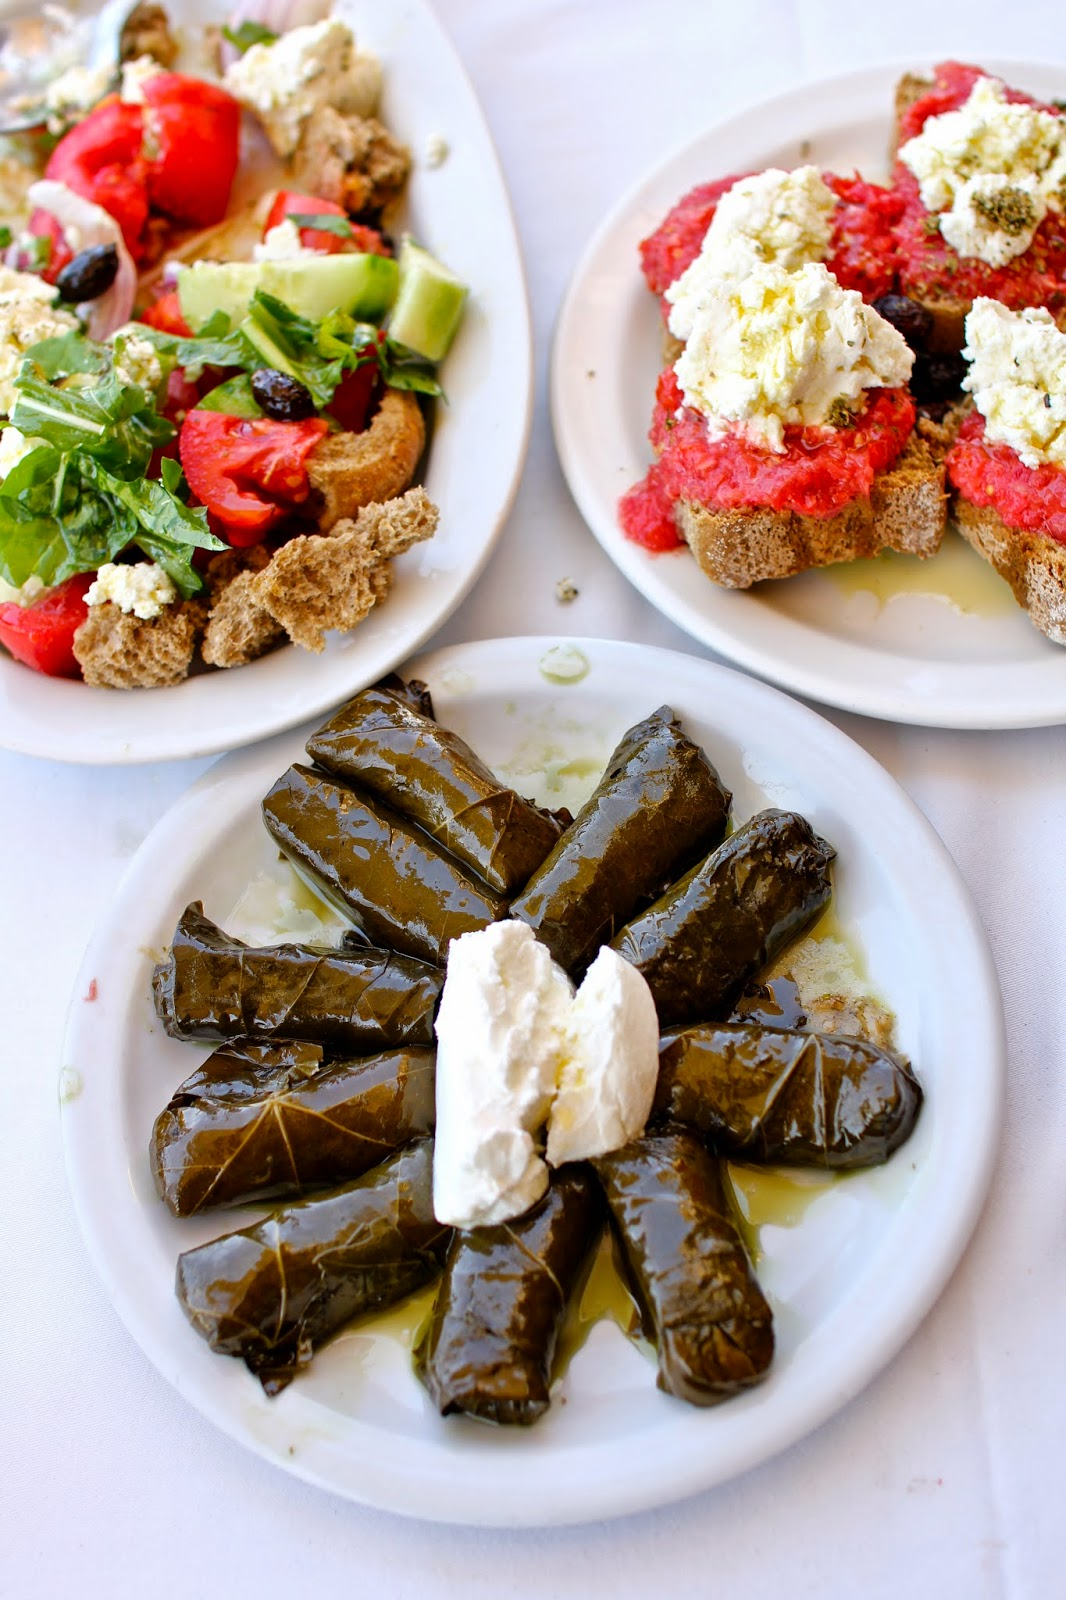 Dolmades | My 5 favorite gluten-free dishes in Greece